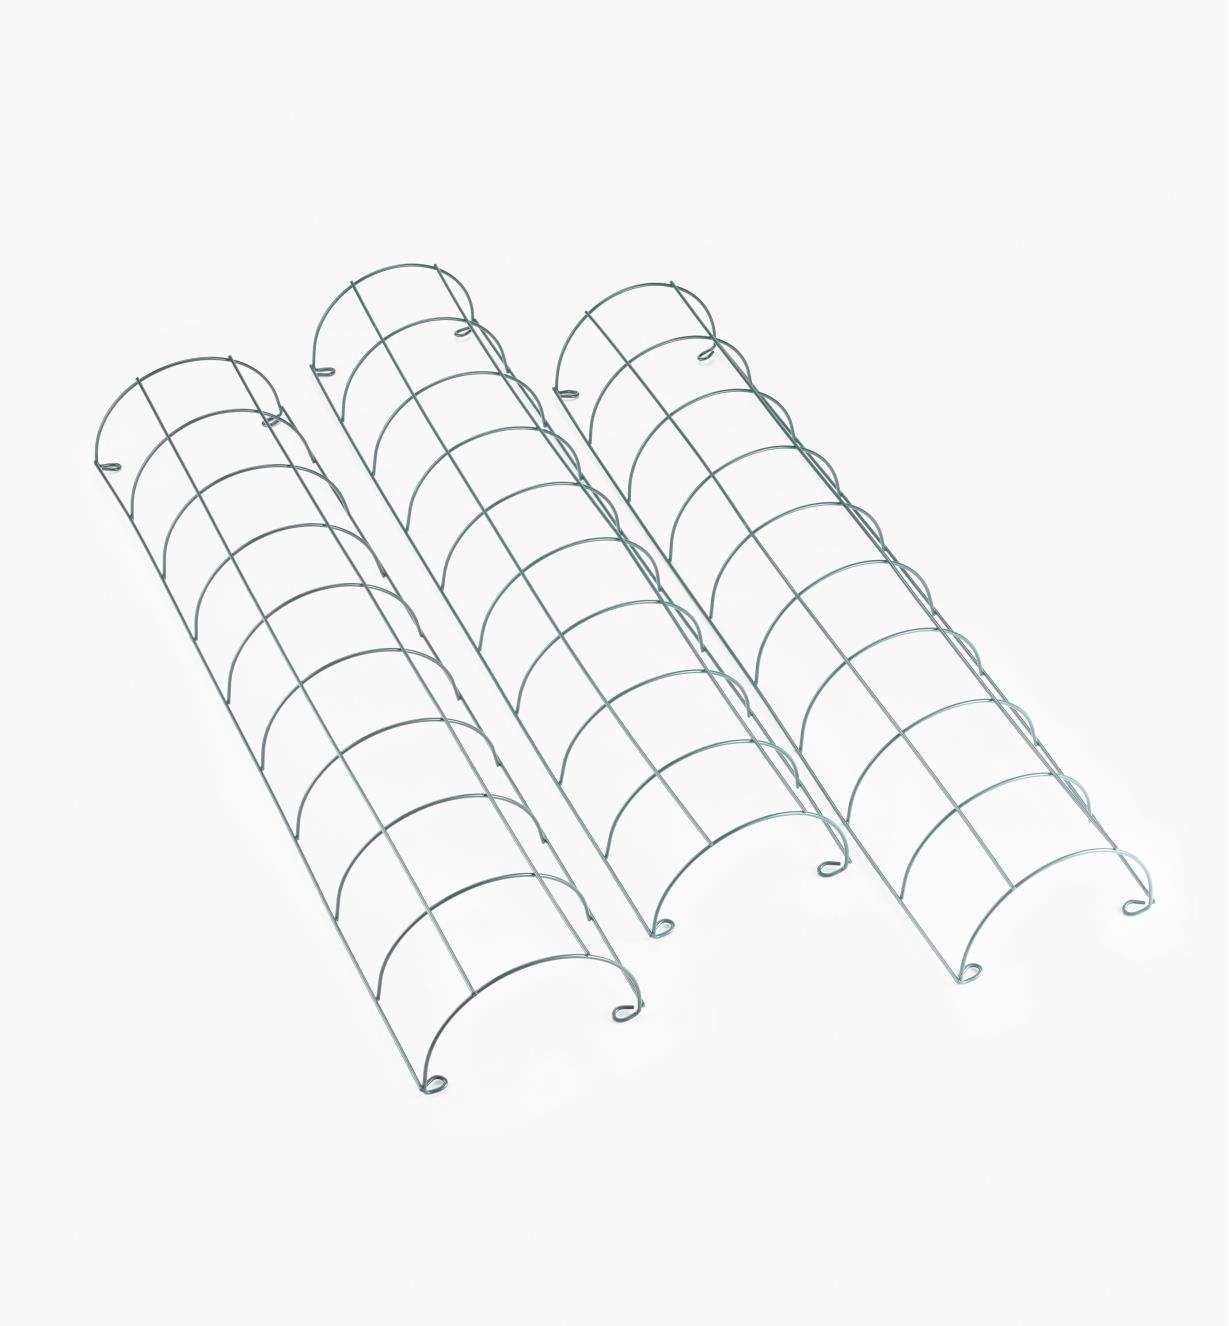 FG211 - Downspout Trellis Kit, Set of 3